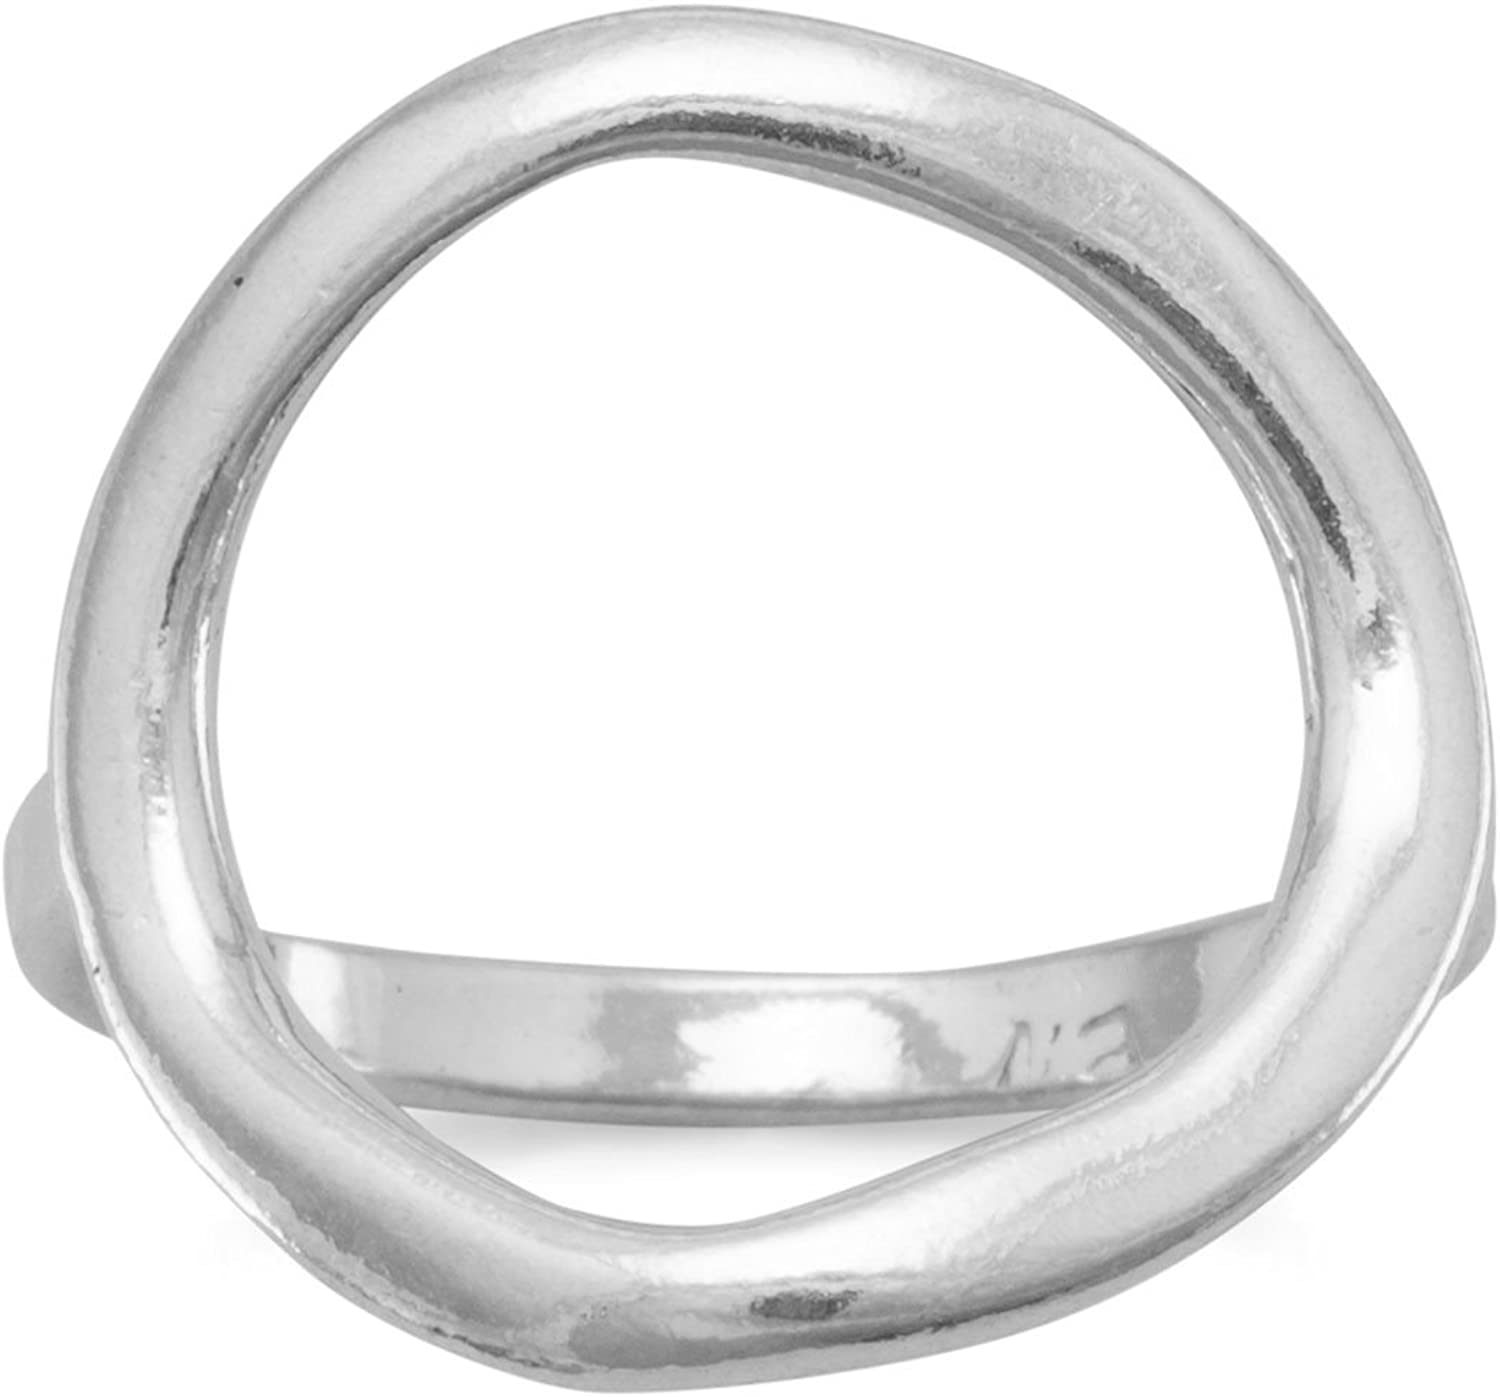 West Coast Jewelry Sterling Silver Mens Cubic Zirconia Ring